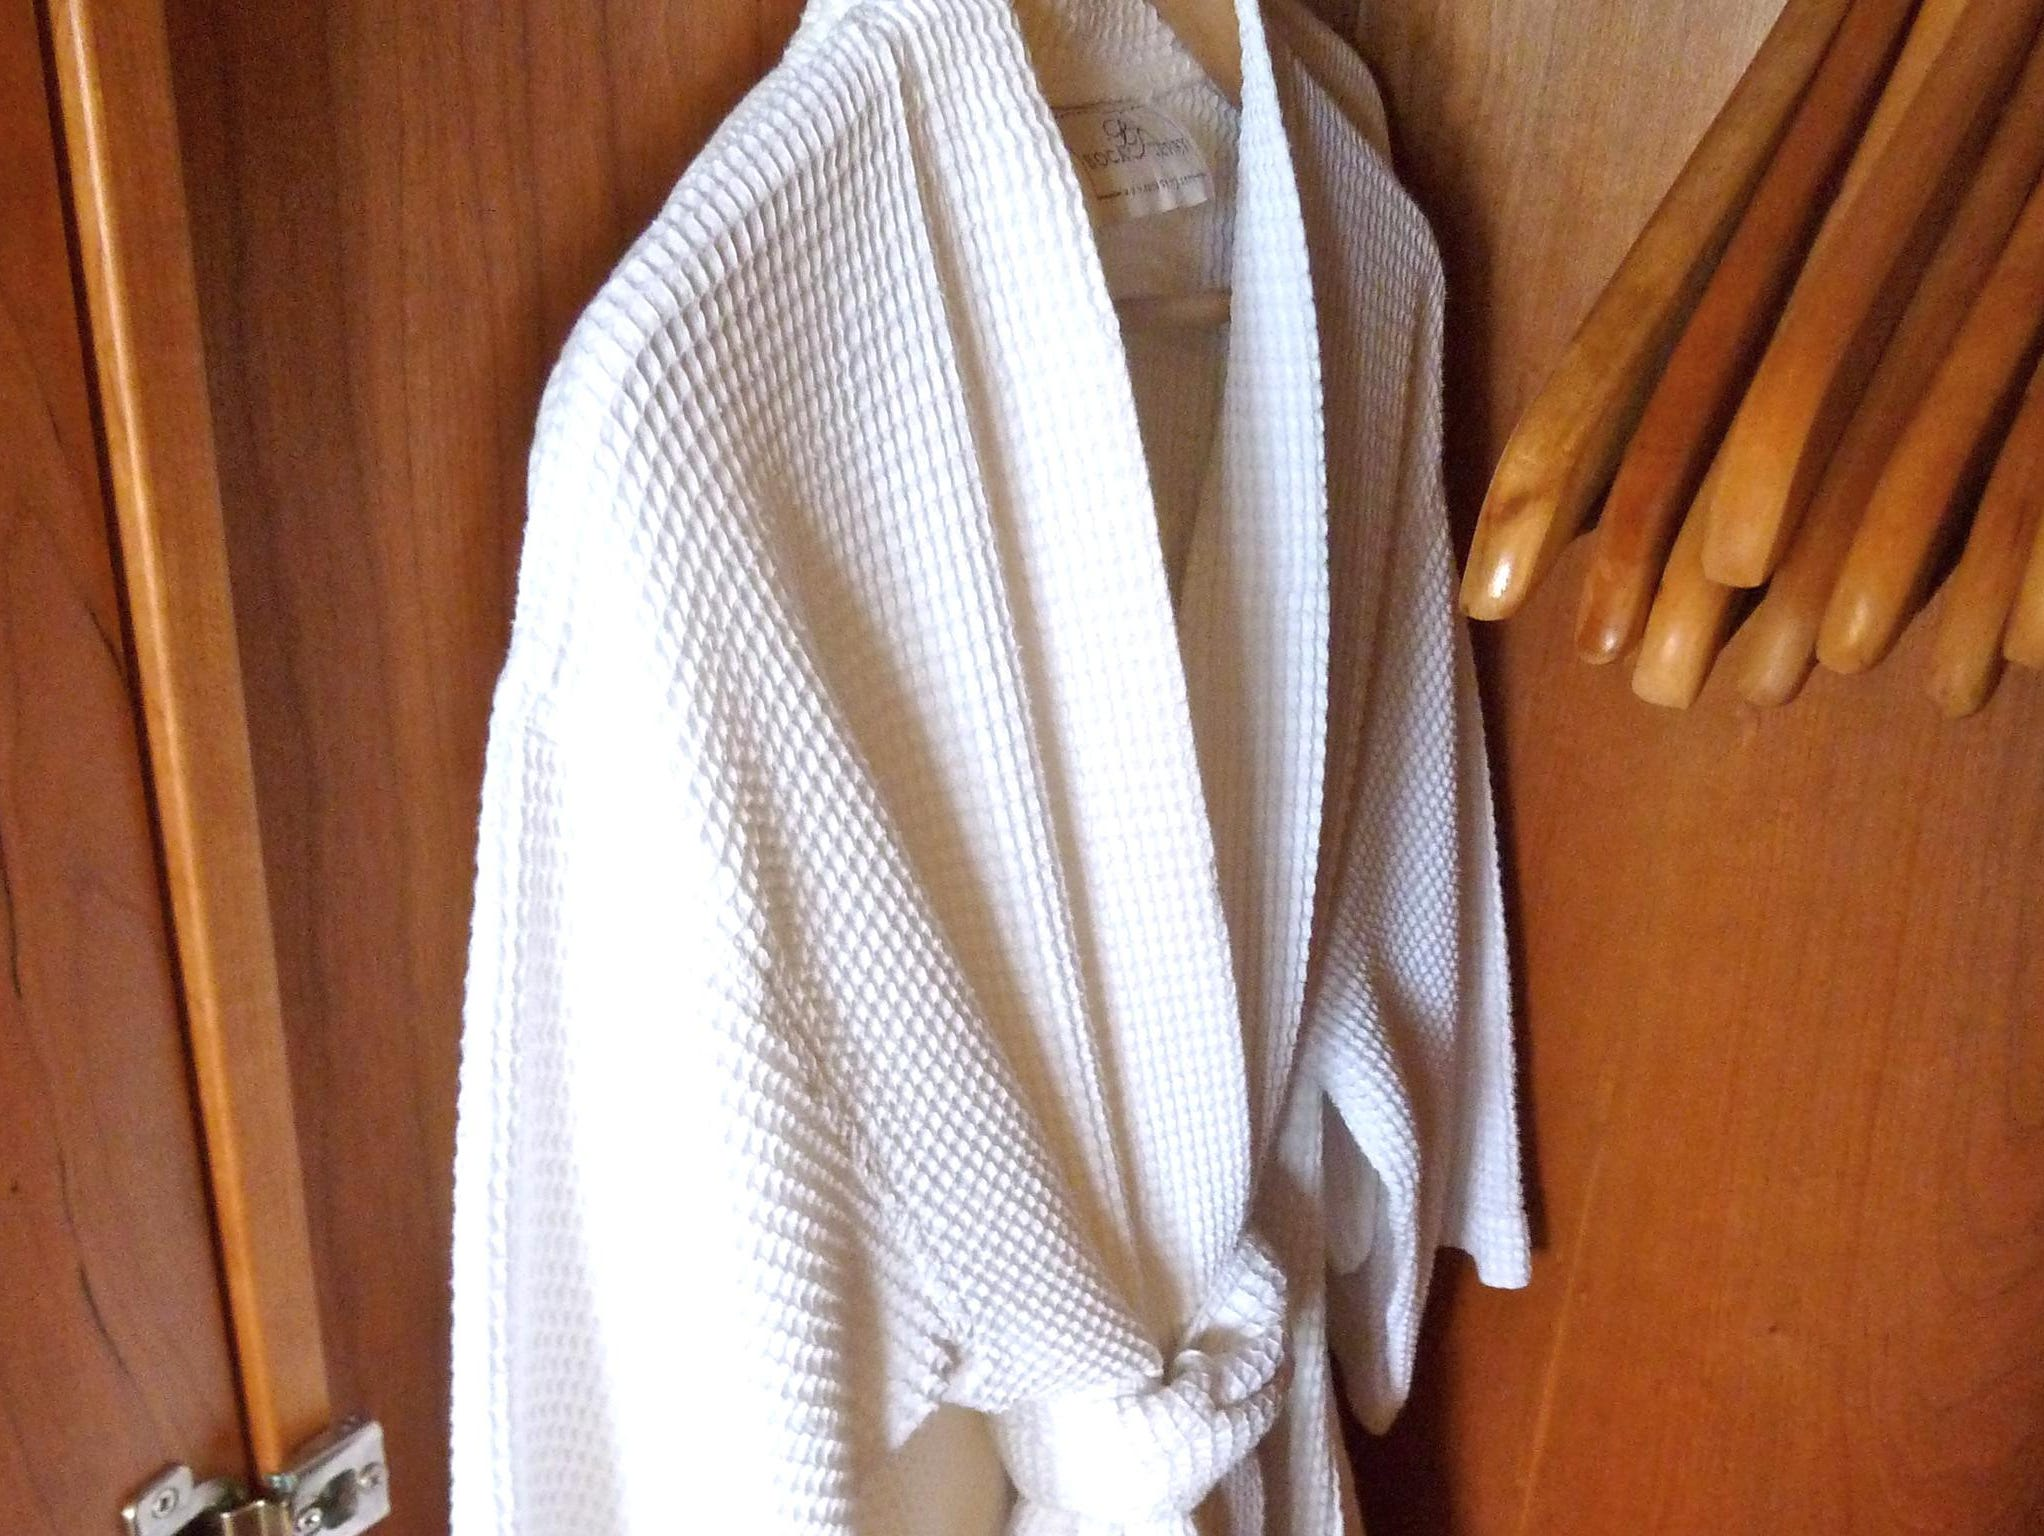 Terry bathrobes and slippers as well as hair dryers and alarm clocks are provided in each cabin.